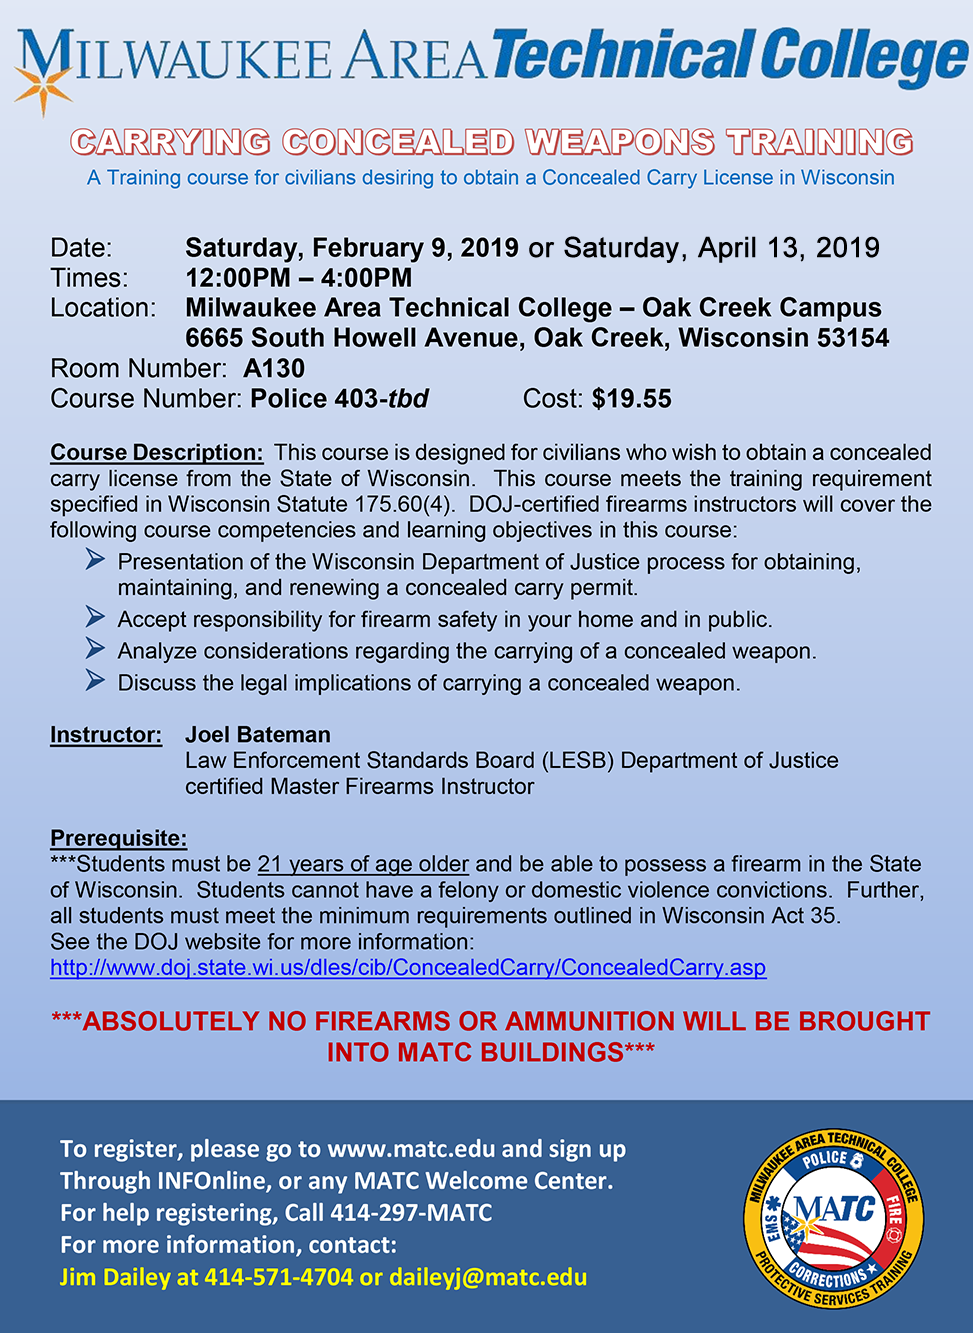 Carrying Concealed Weapons Training